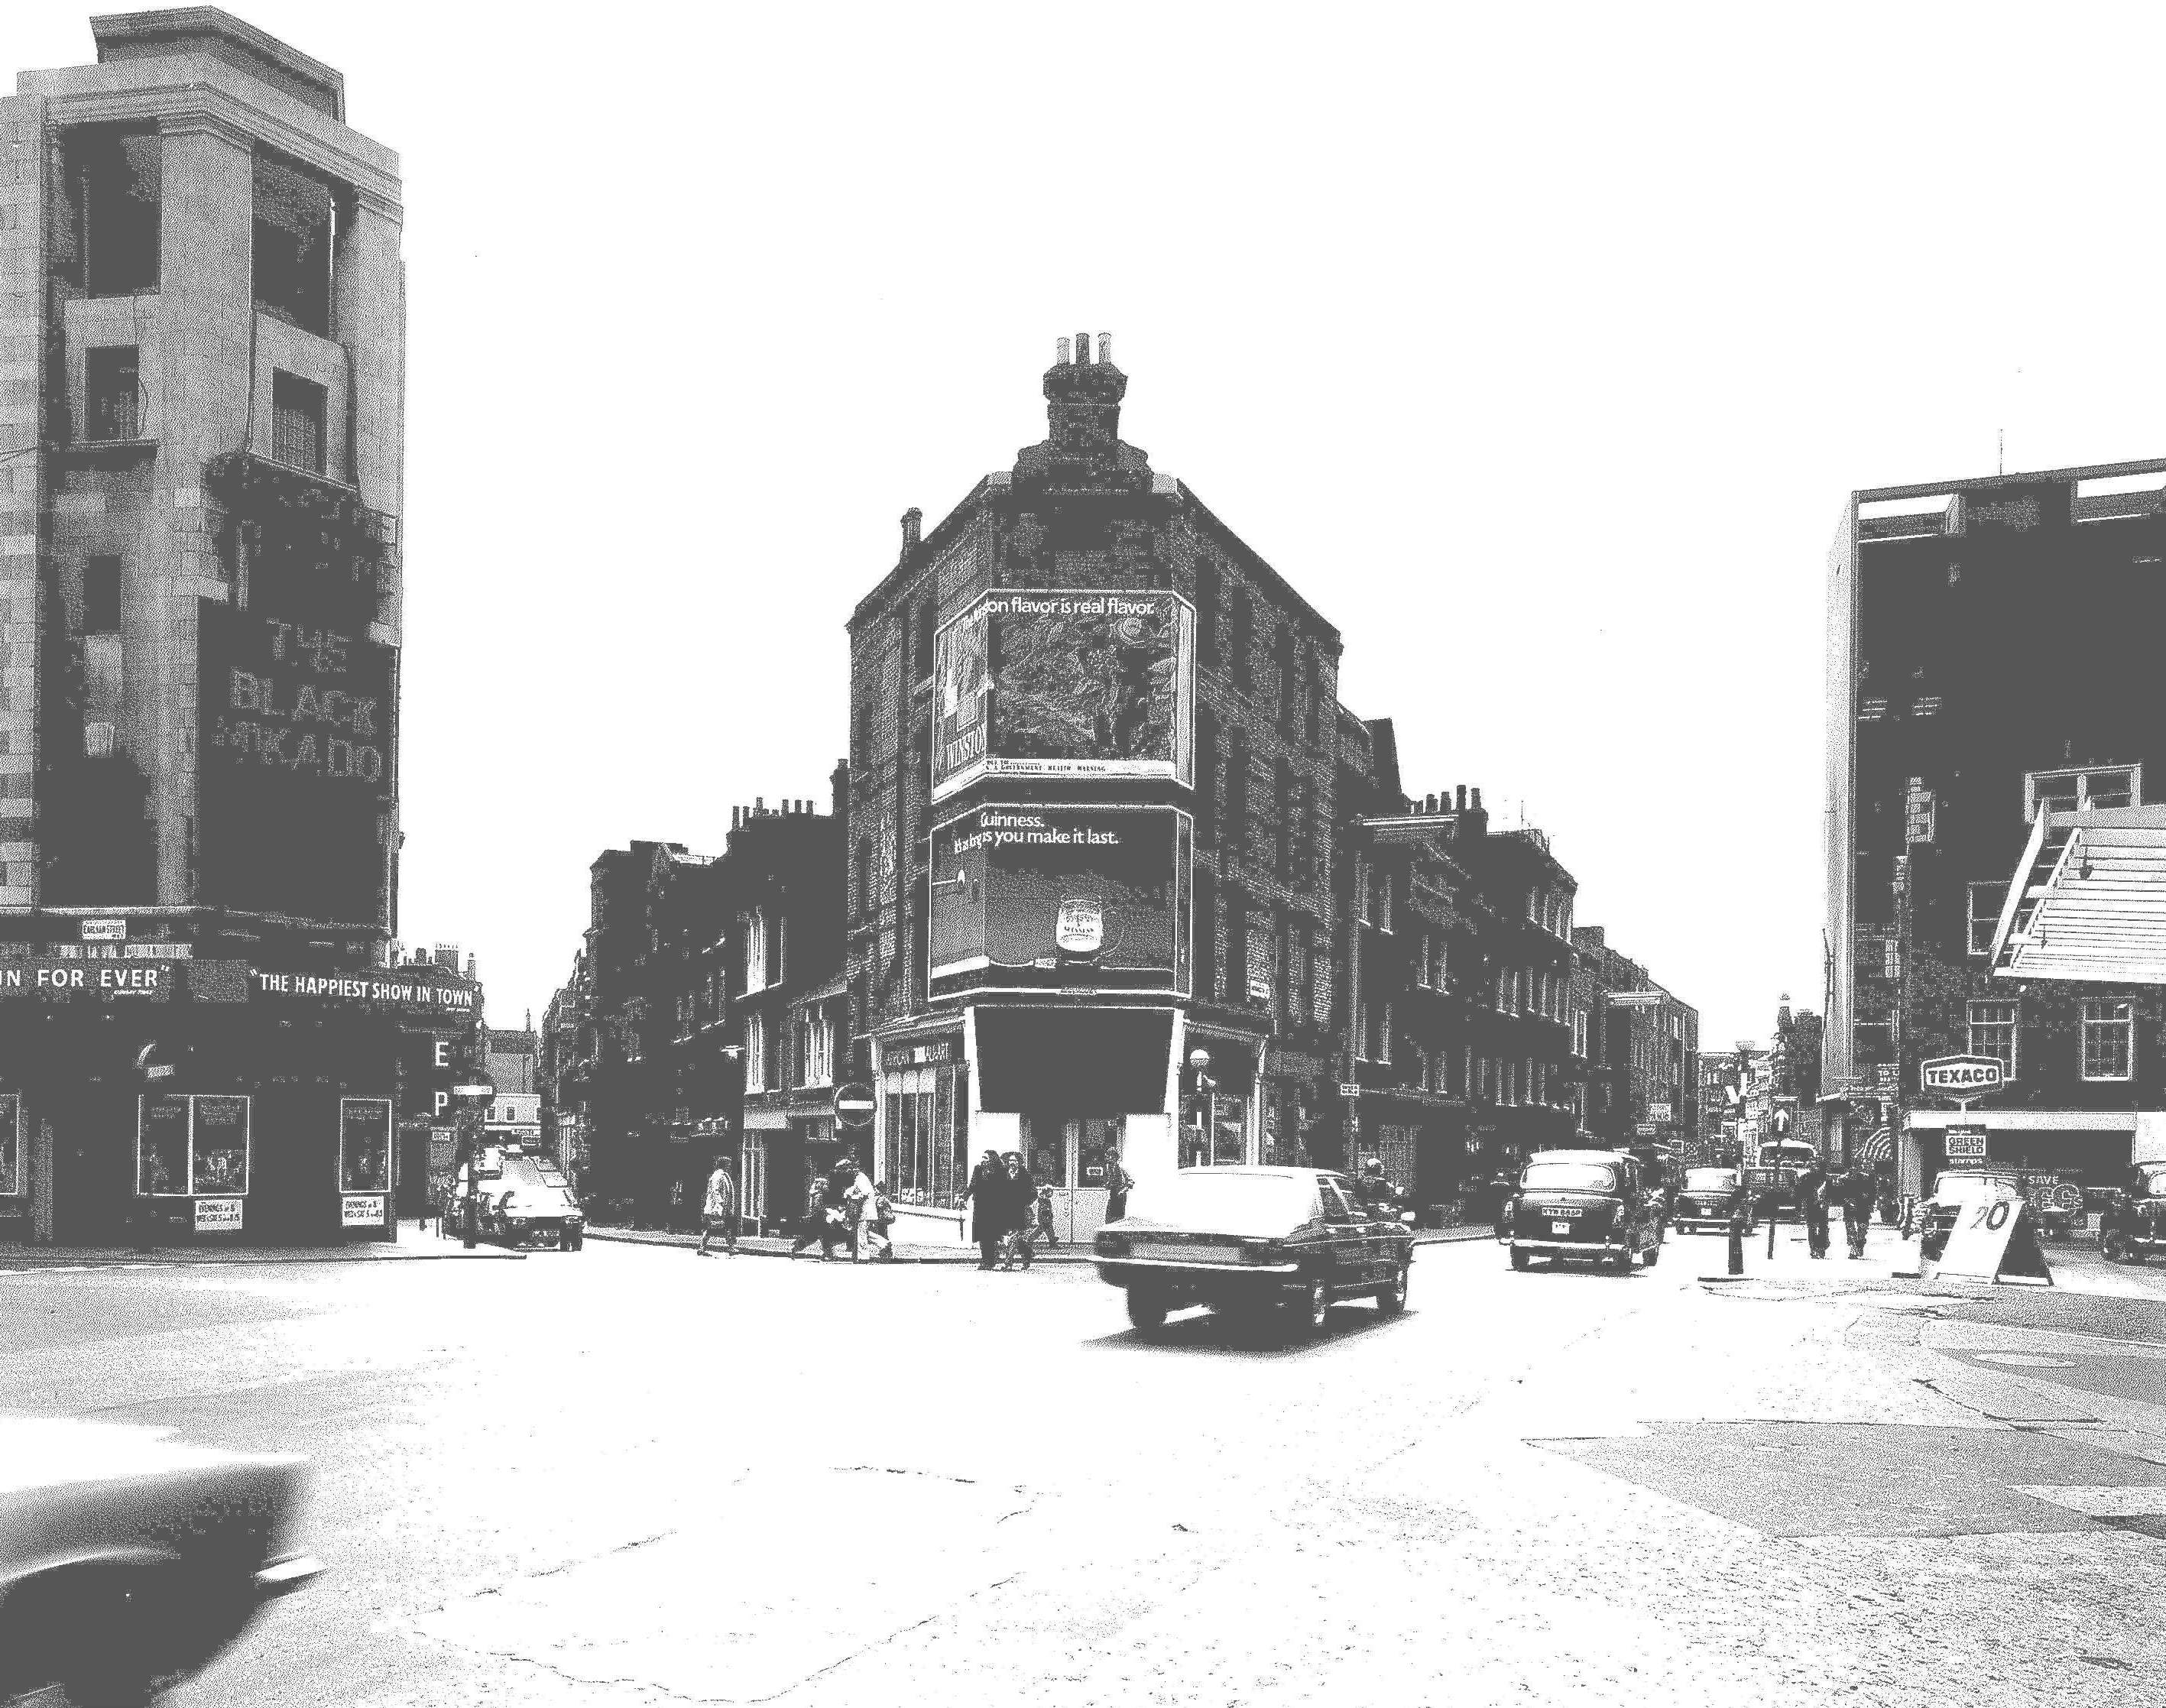 Seven Dials 1970, no trees or entablature planting (and no Sundial Pillar).